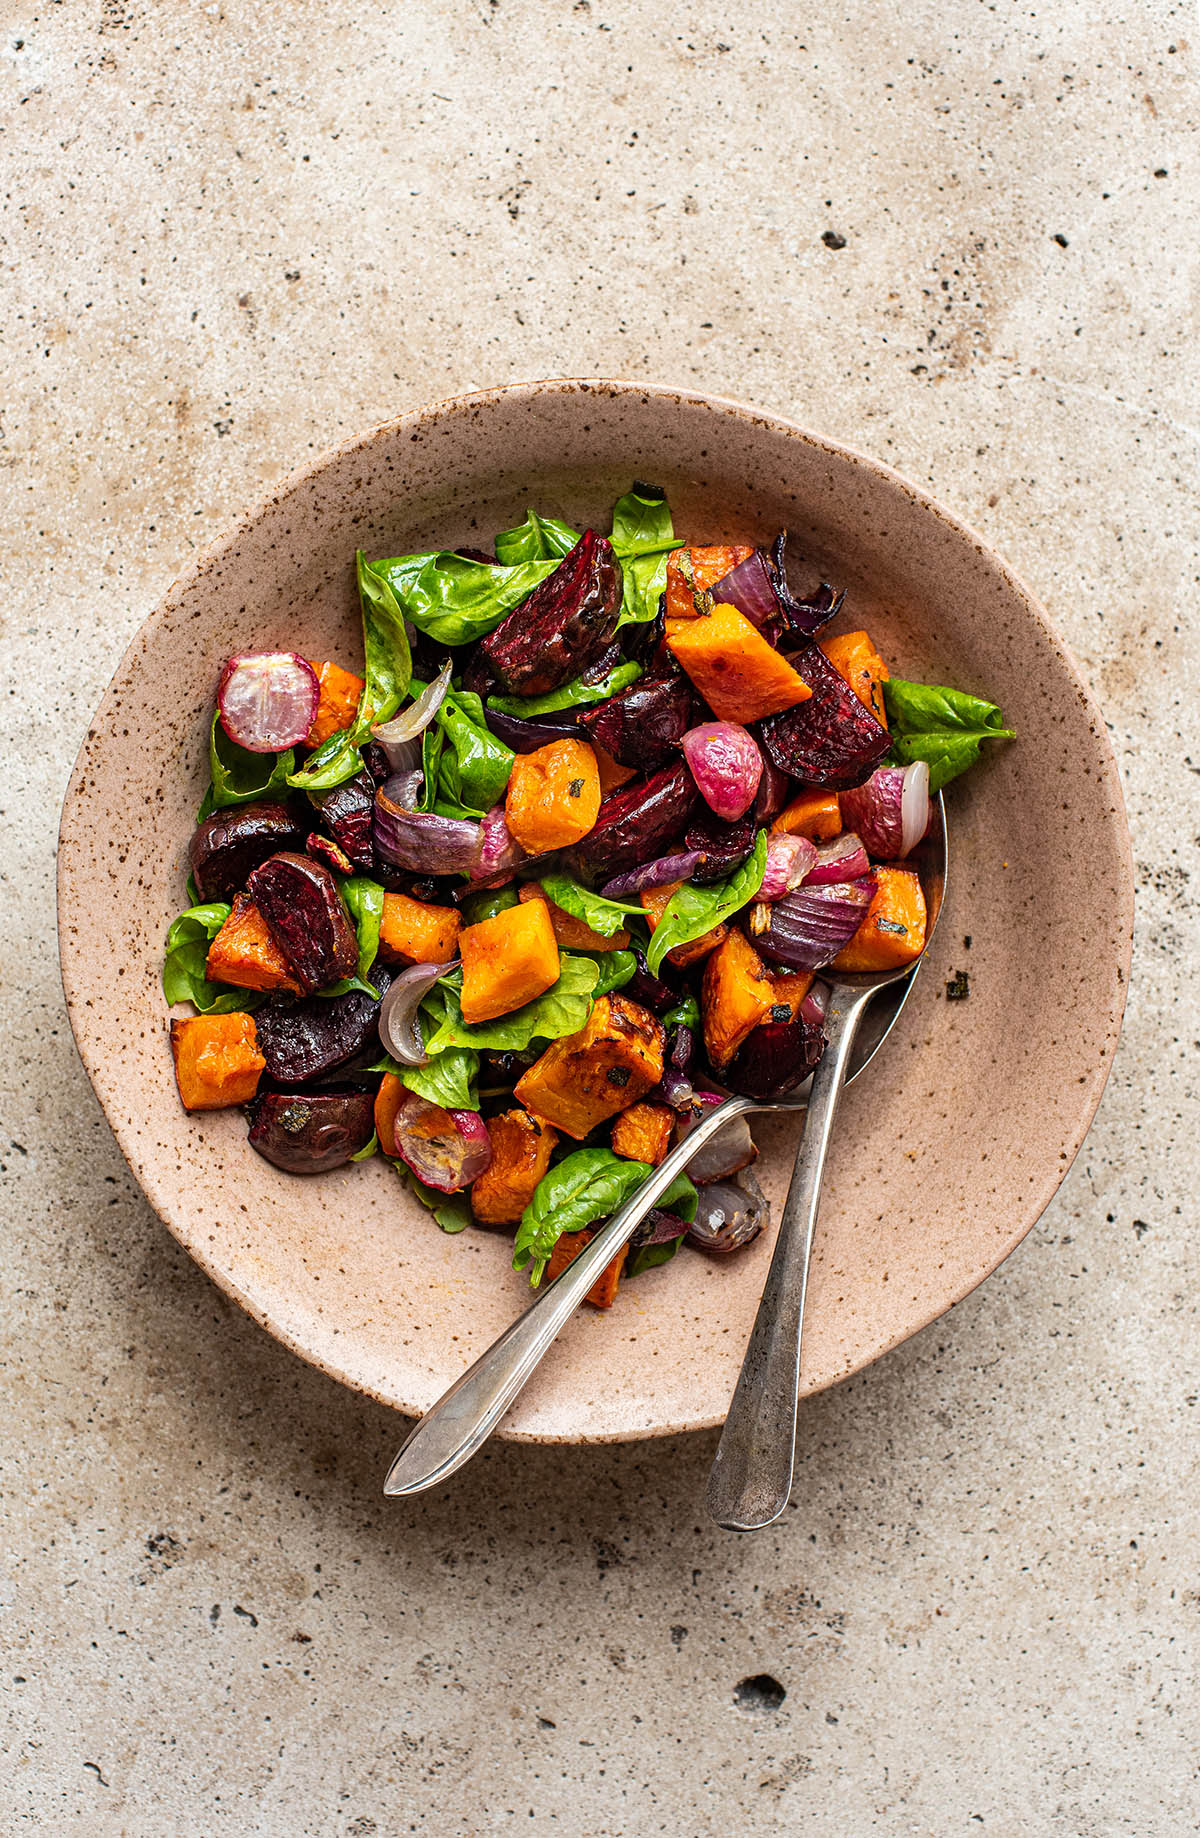 Roasted vegetables added to greens in a large bowl.